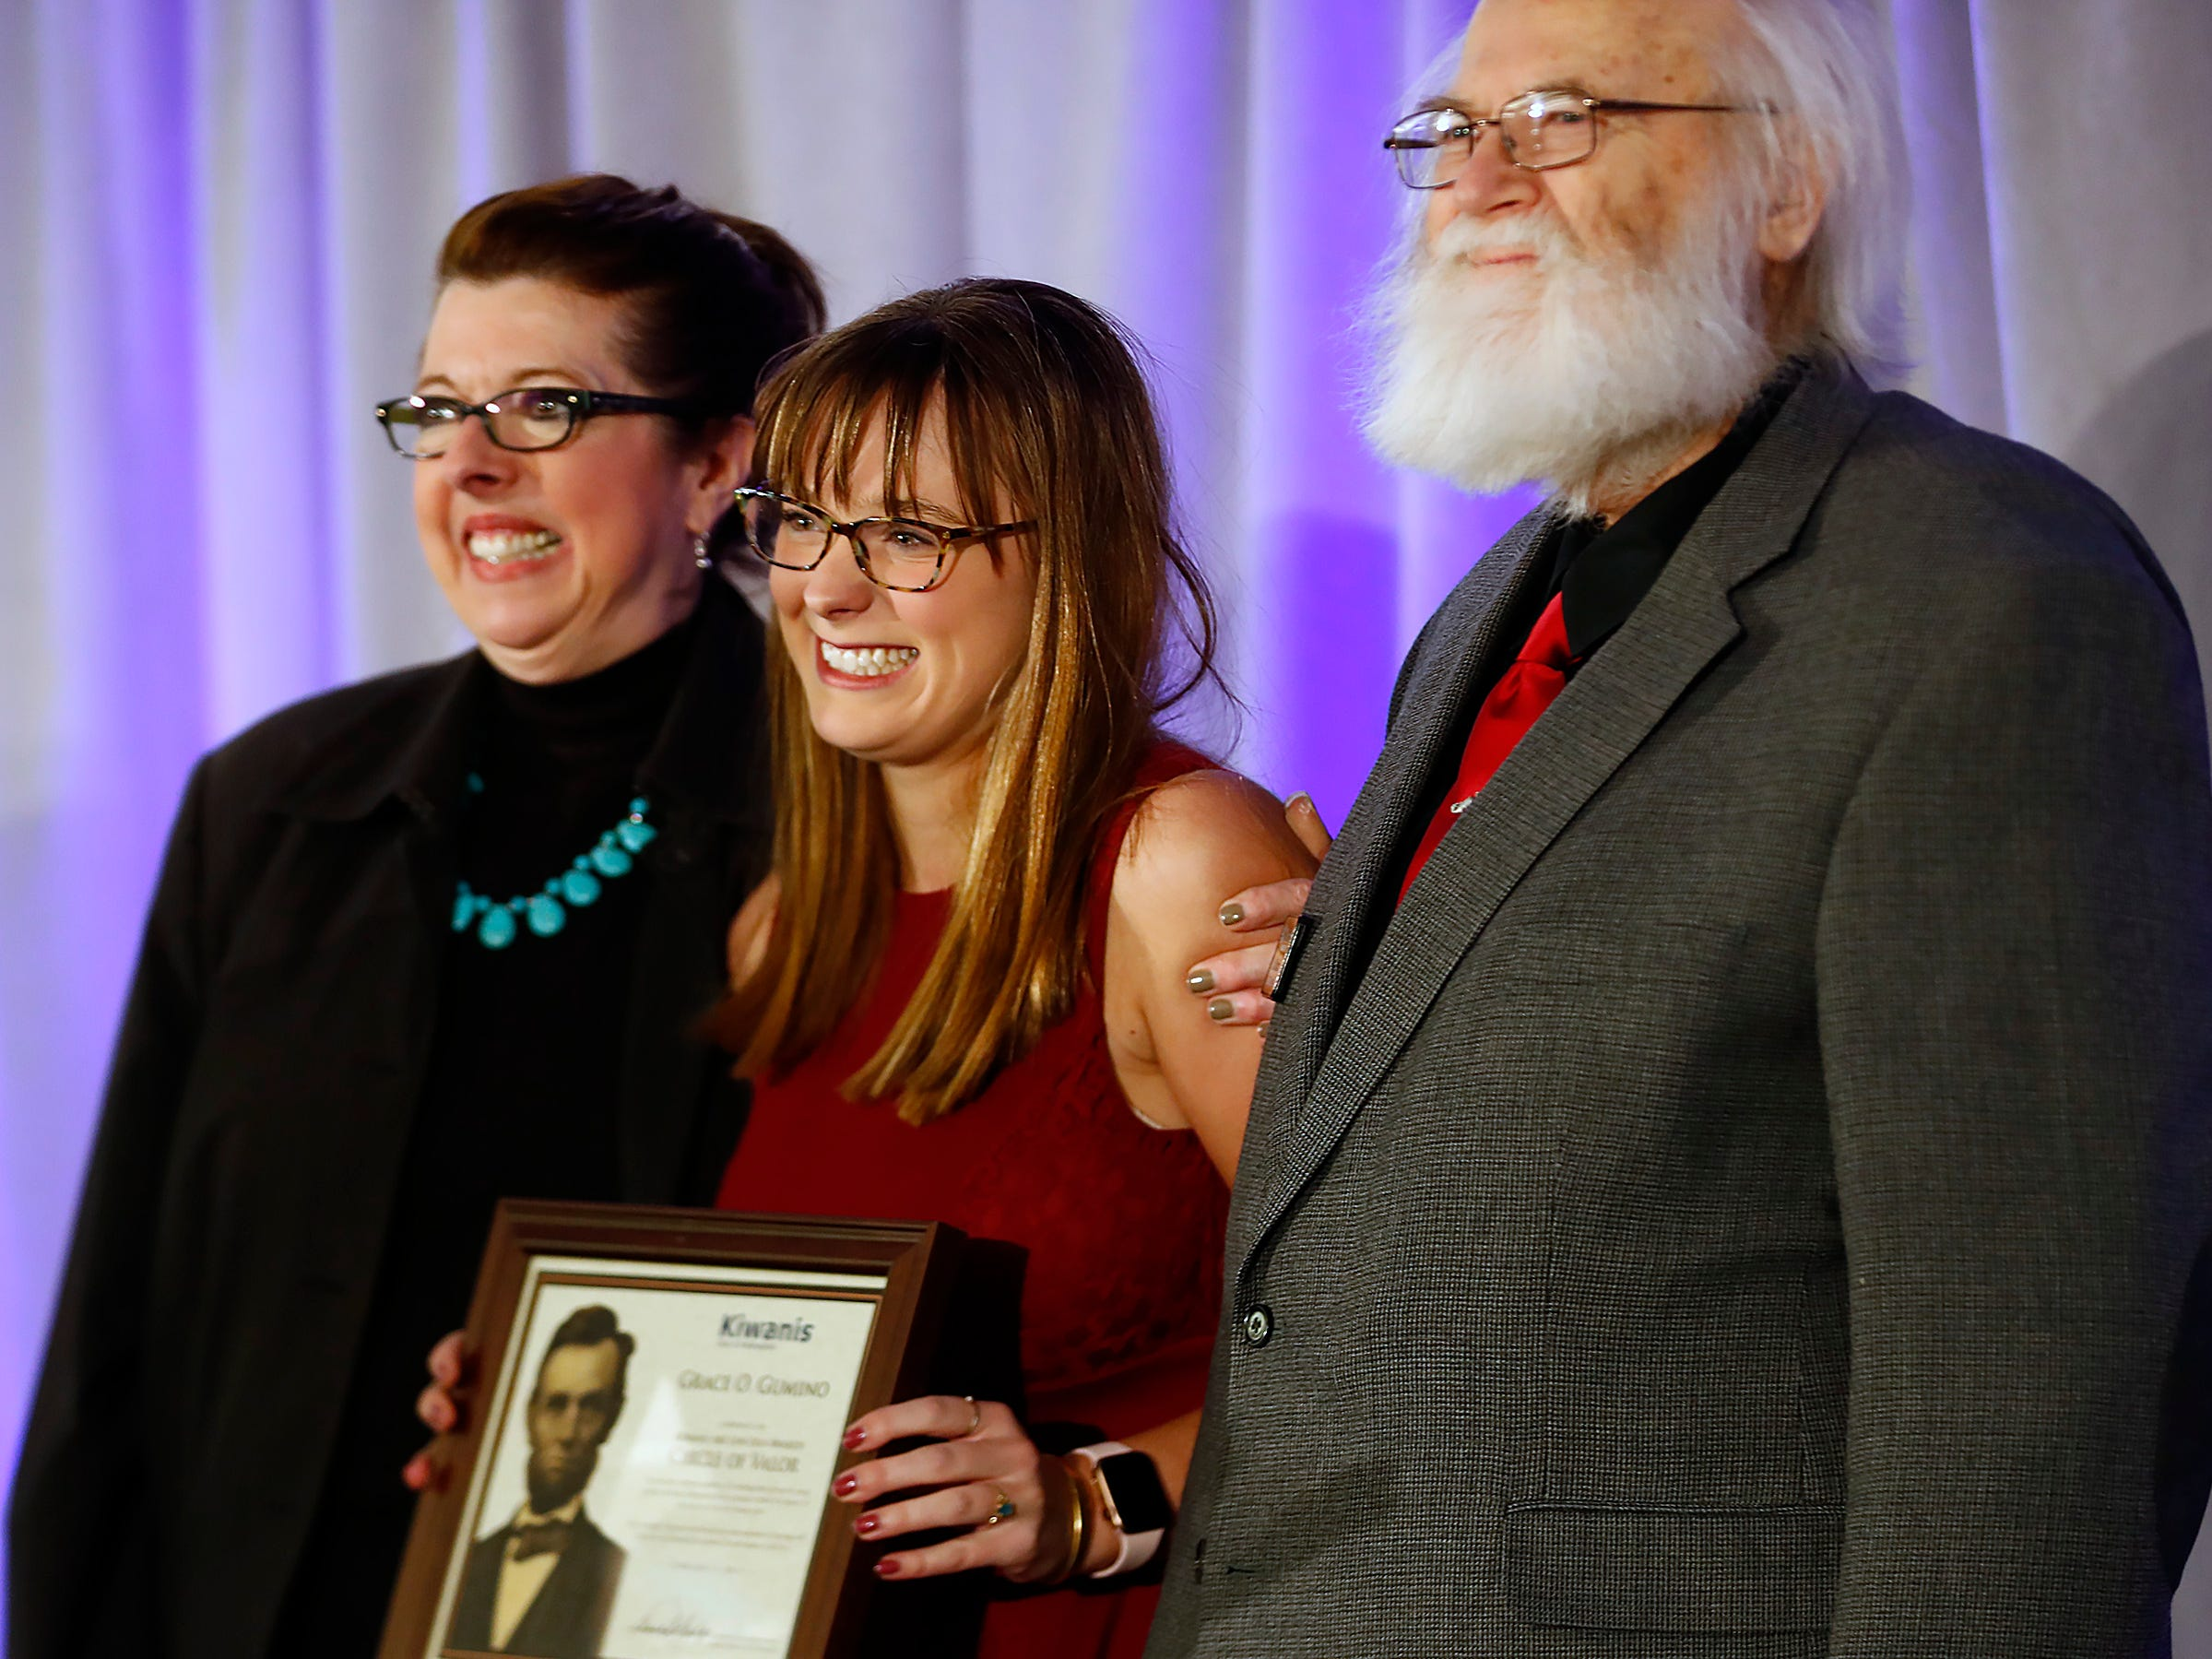 Cathedral High School student Grace Gumino, center, is honored with a Circle of Valor award at the 44th Annual Abe Lincoln Awards Program, Friday, Feb. 8, 2019. The Kiwanis Club of Indianapolis program was held at Ivy Tech Community College.  20 high school student were honored at the annual event which celebrates overcoming adversity in life to succeed.